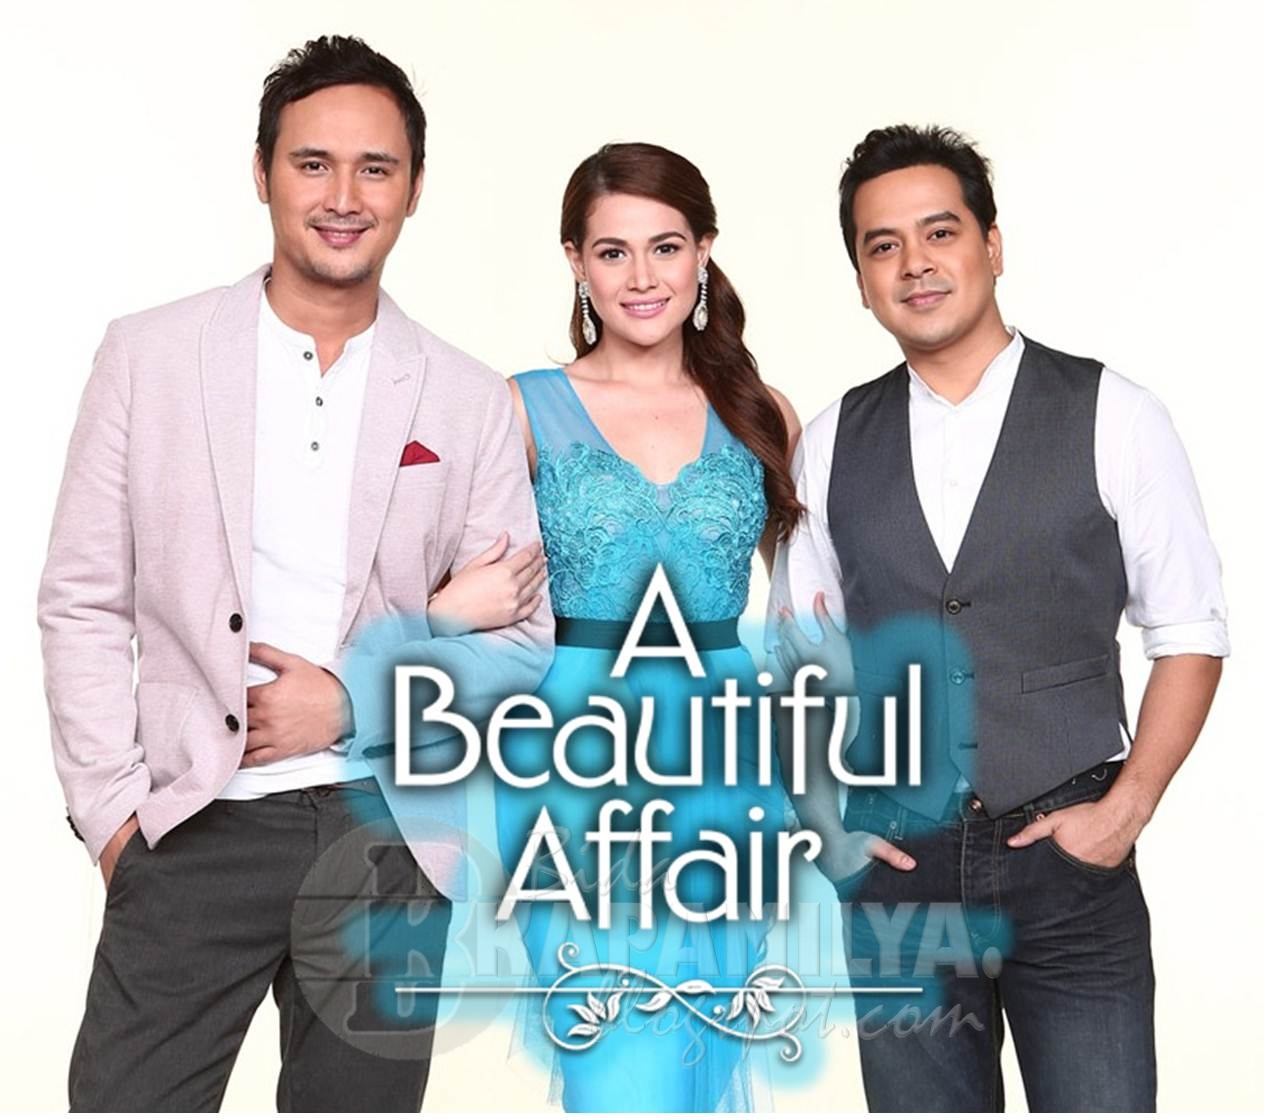 A BEAUTIFUL AFFAIR - OCT. 30, 2012 PART 4/4